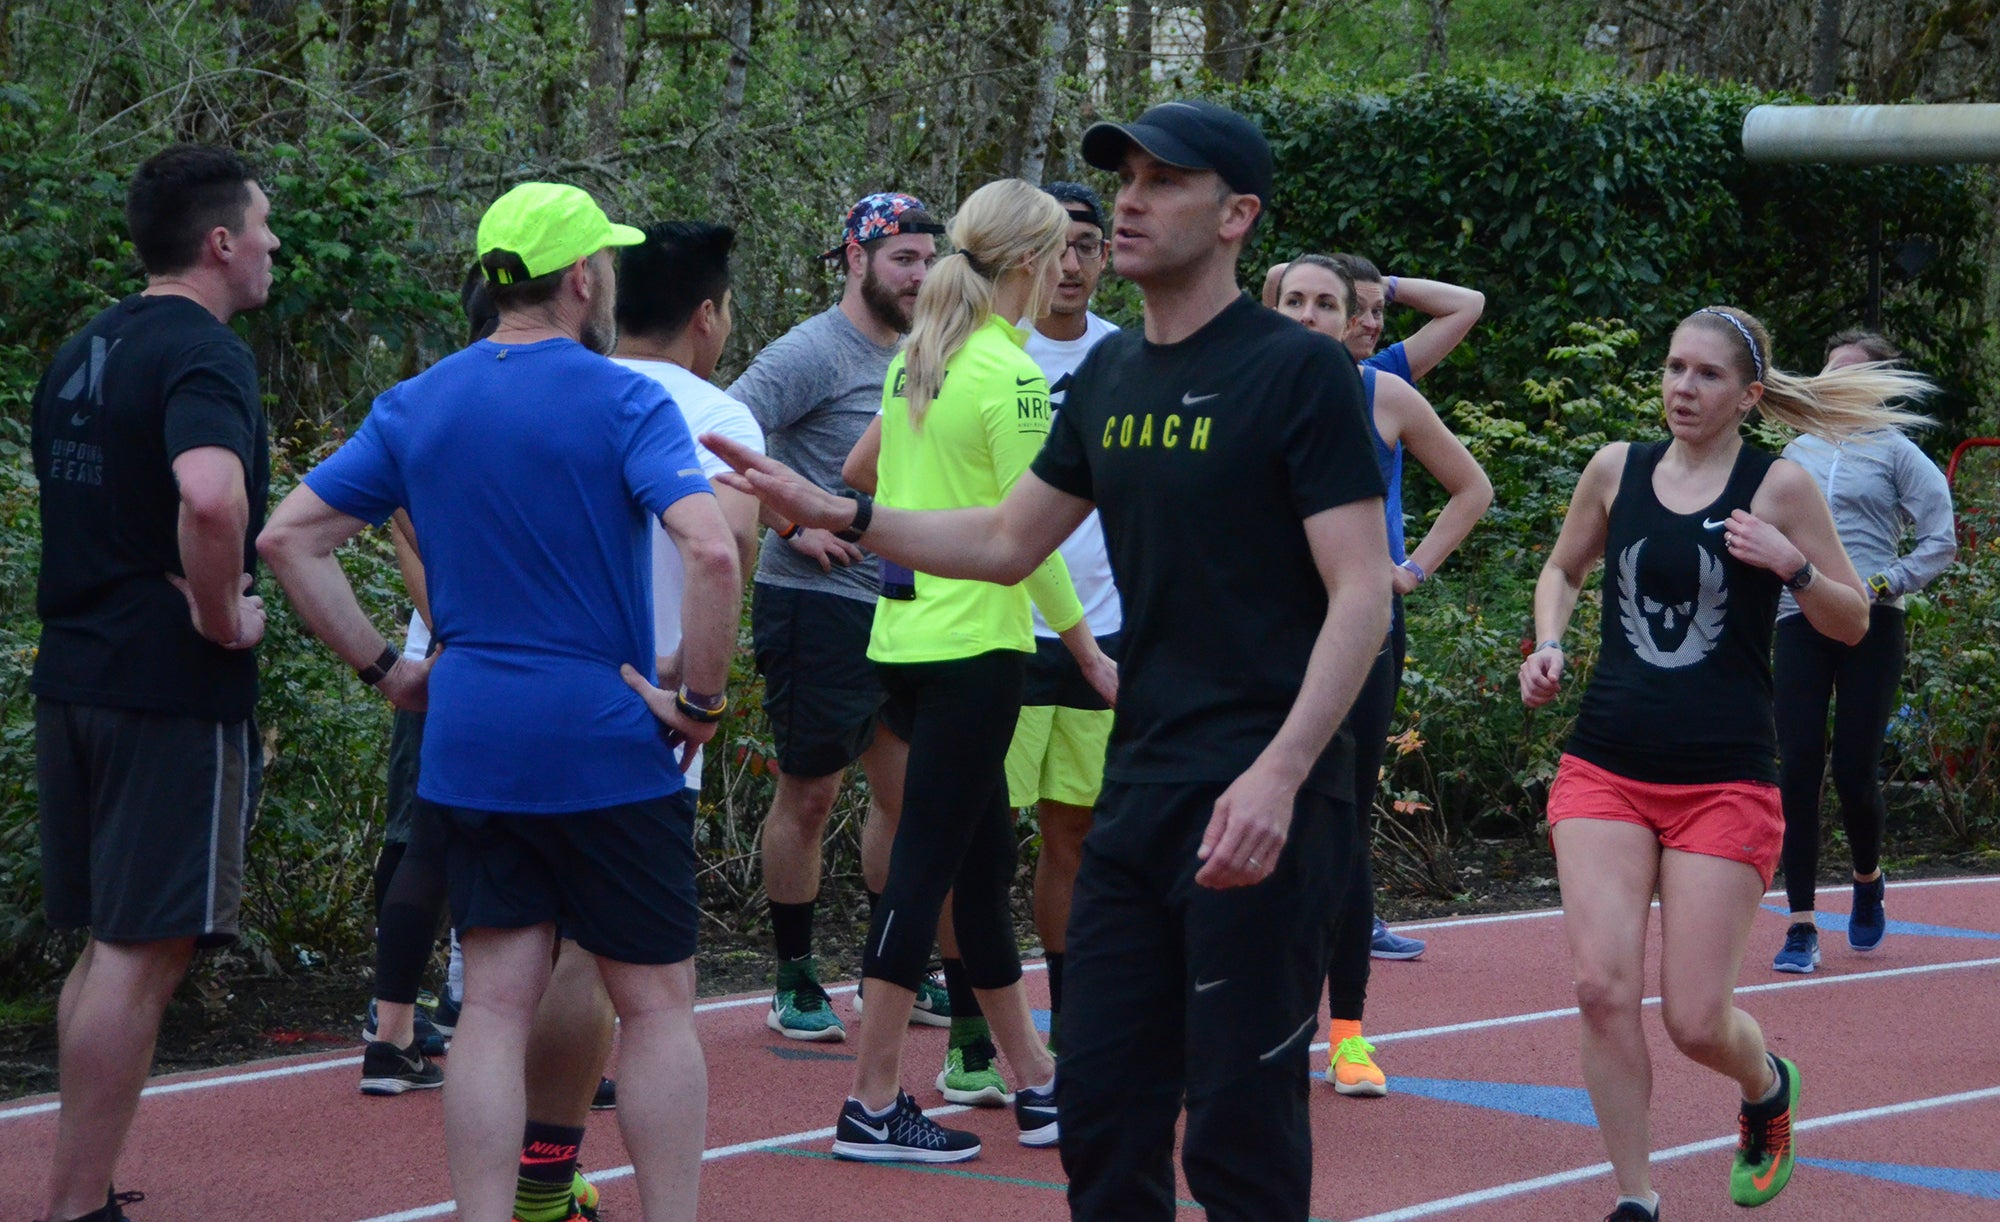 Chris Bennett coaching Nike+Run group